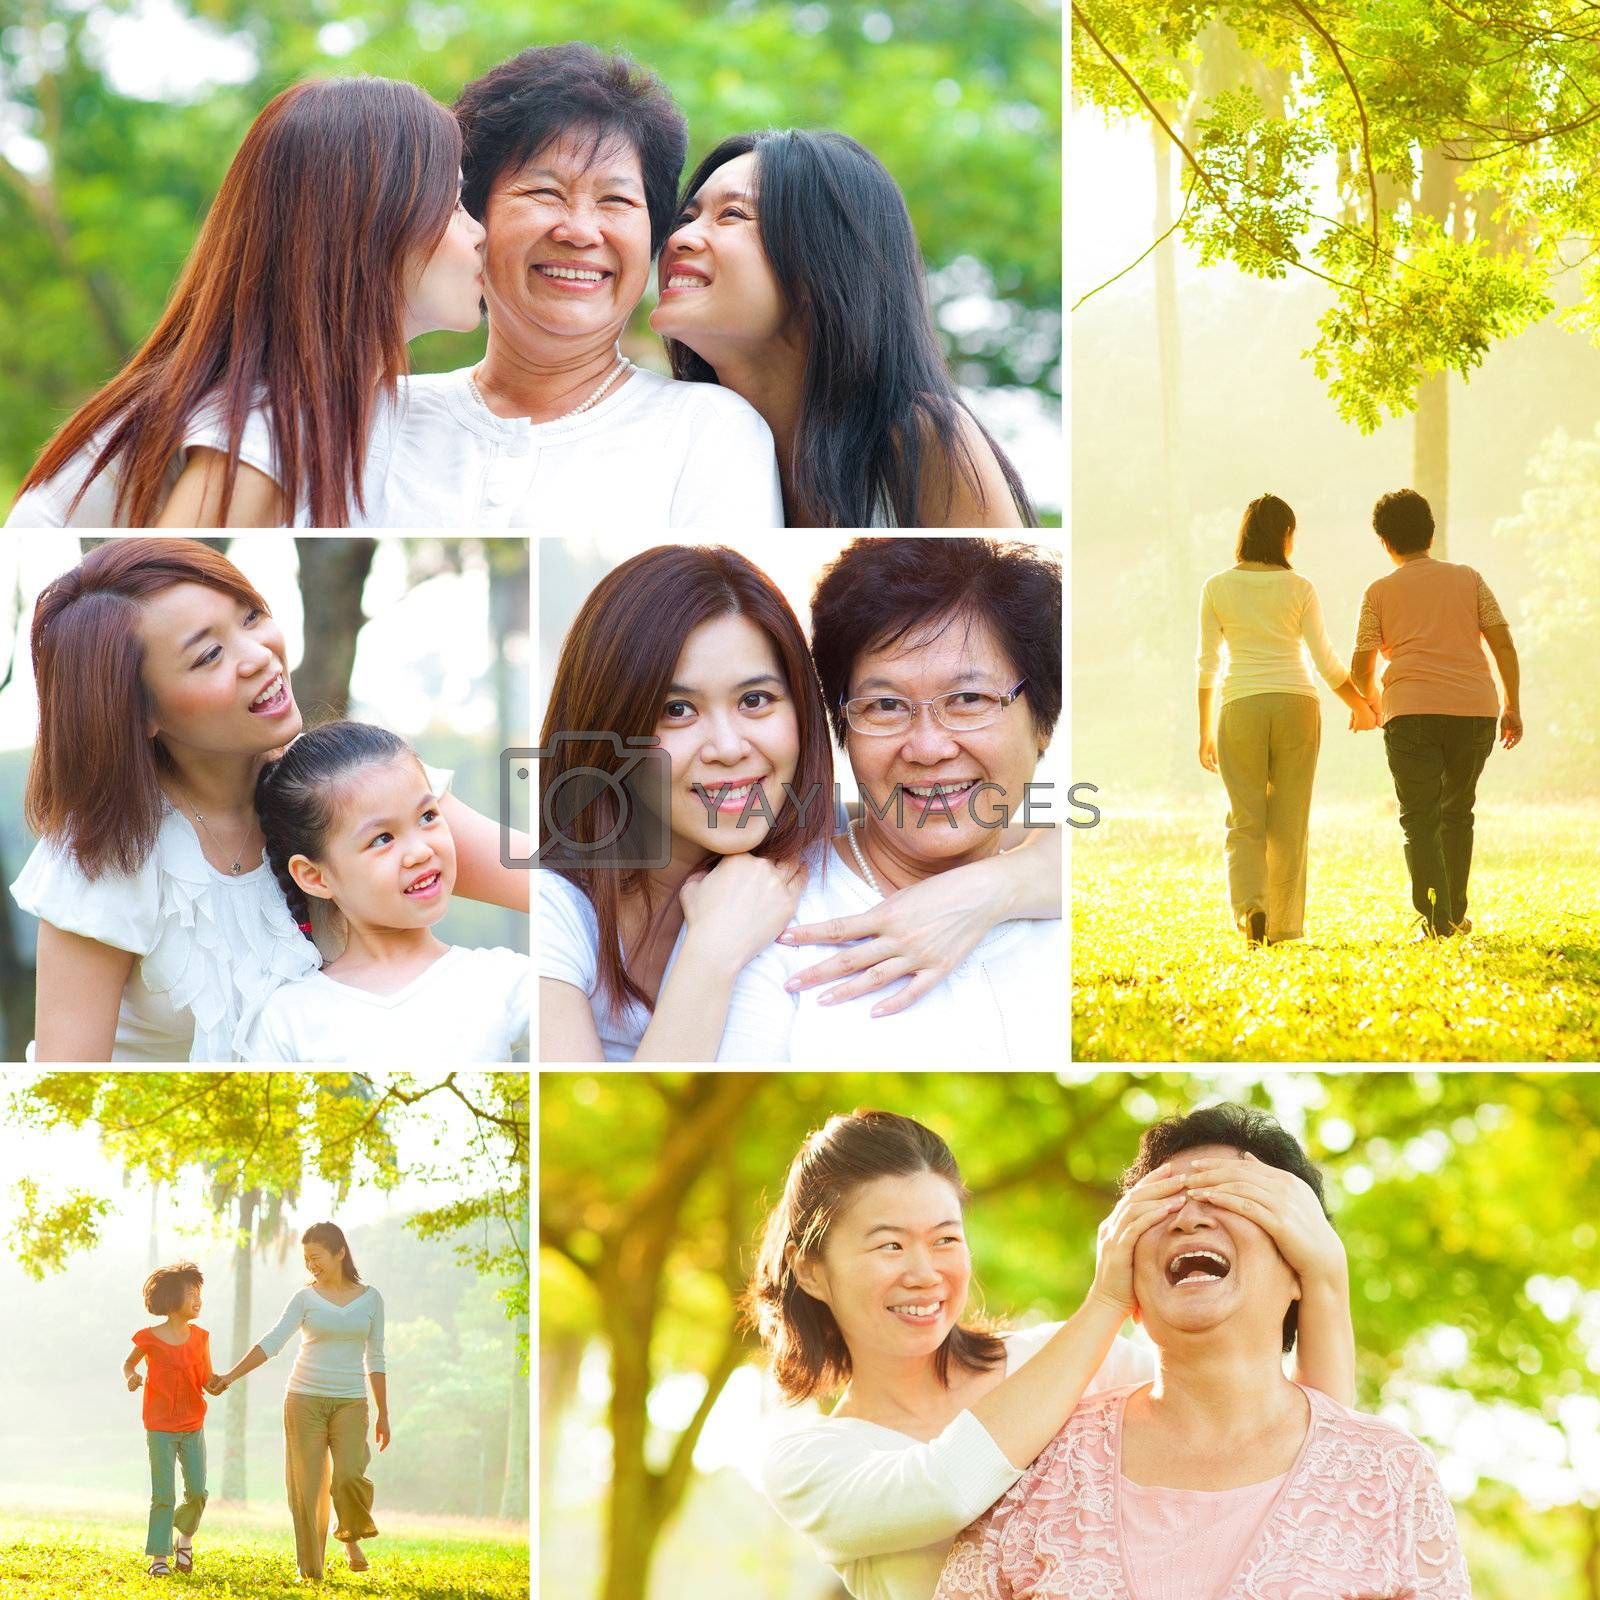 Collage photo mothers day concept. Family generations having fun at outdoor park. All photos belong to me.